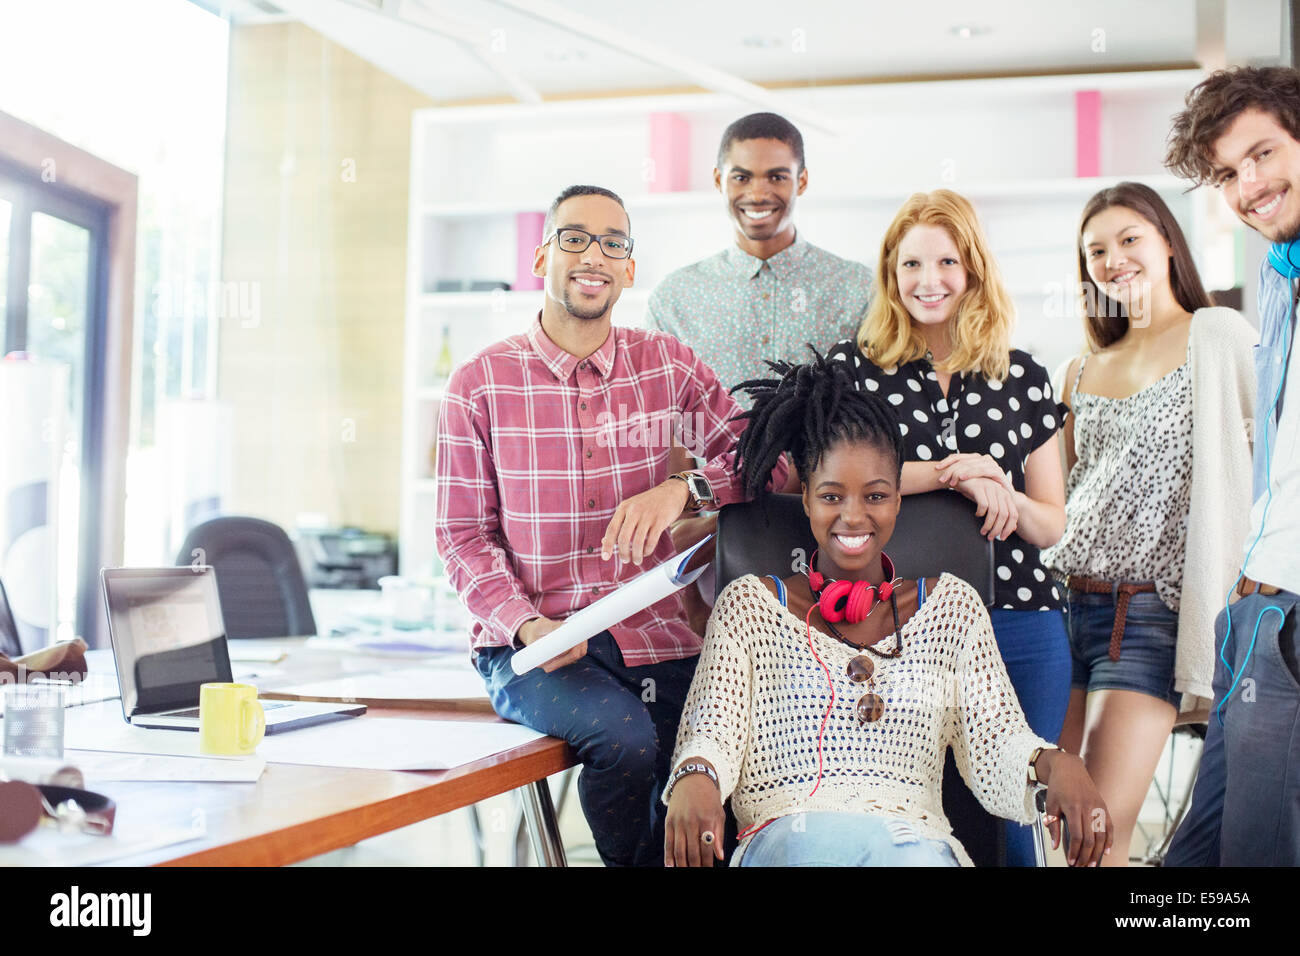 People smiling together in office Stock Photo